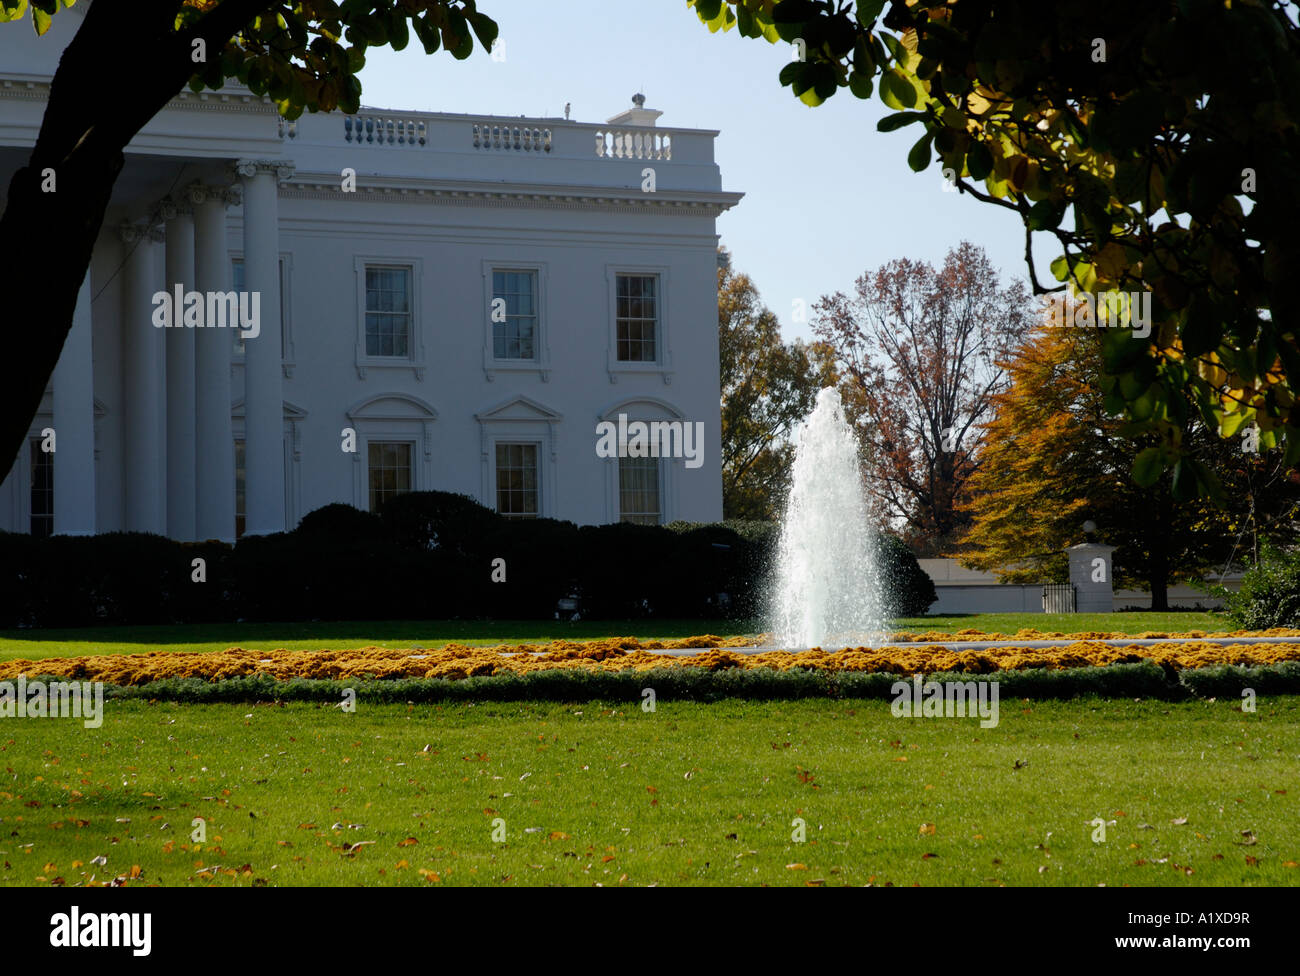 The White House north lawn with fountain. united states presidential executive home - Stock Image